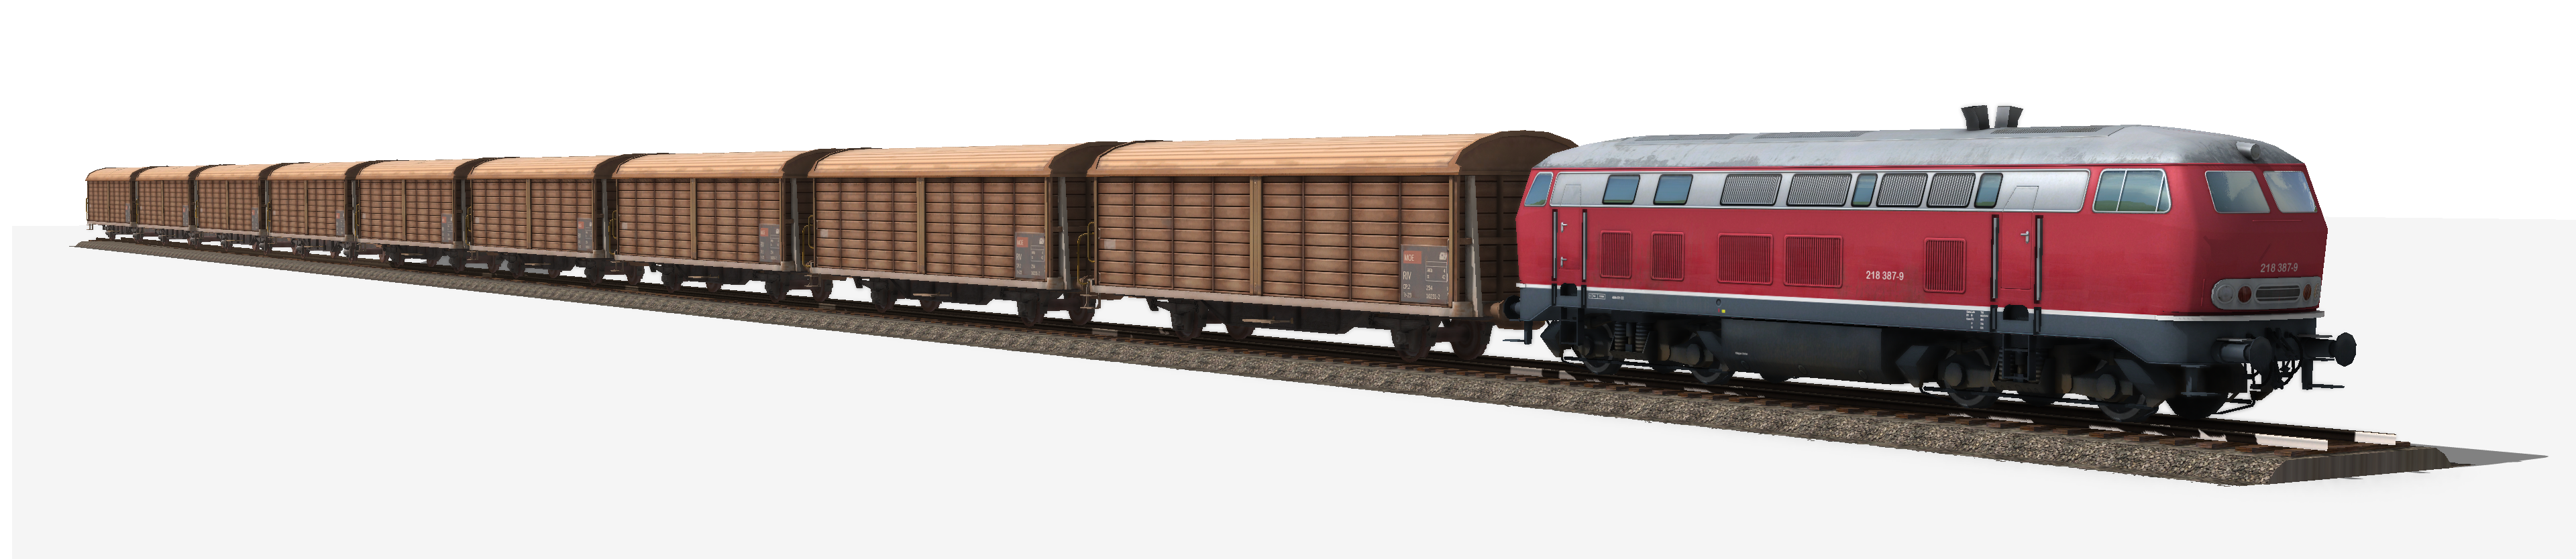 PNG Image Of Train-PlusPNG.com-3840 - PNG Image Of Train